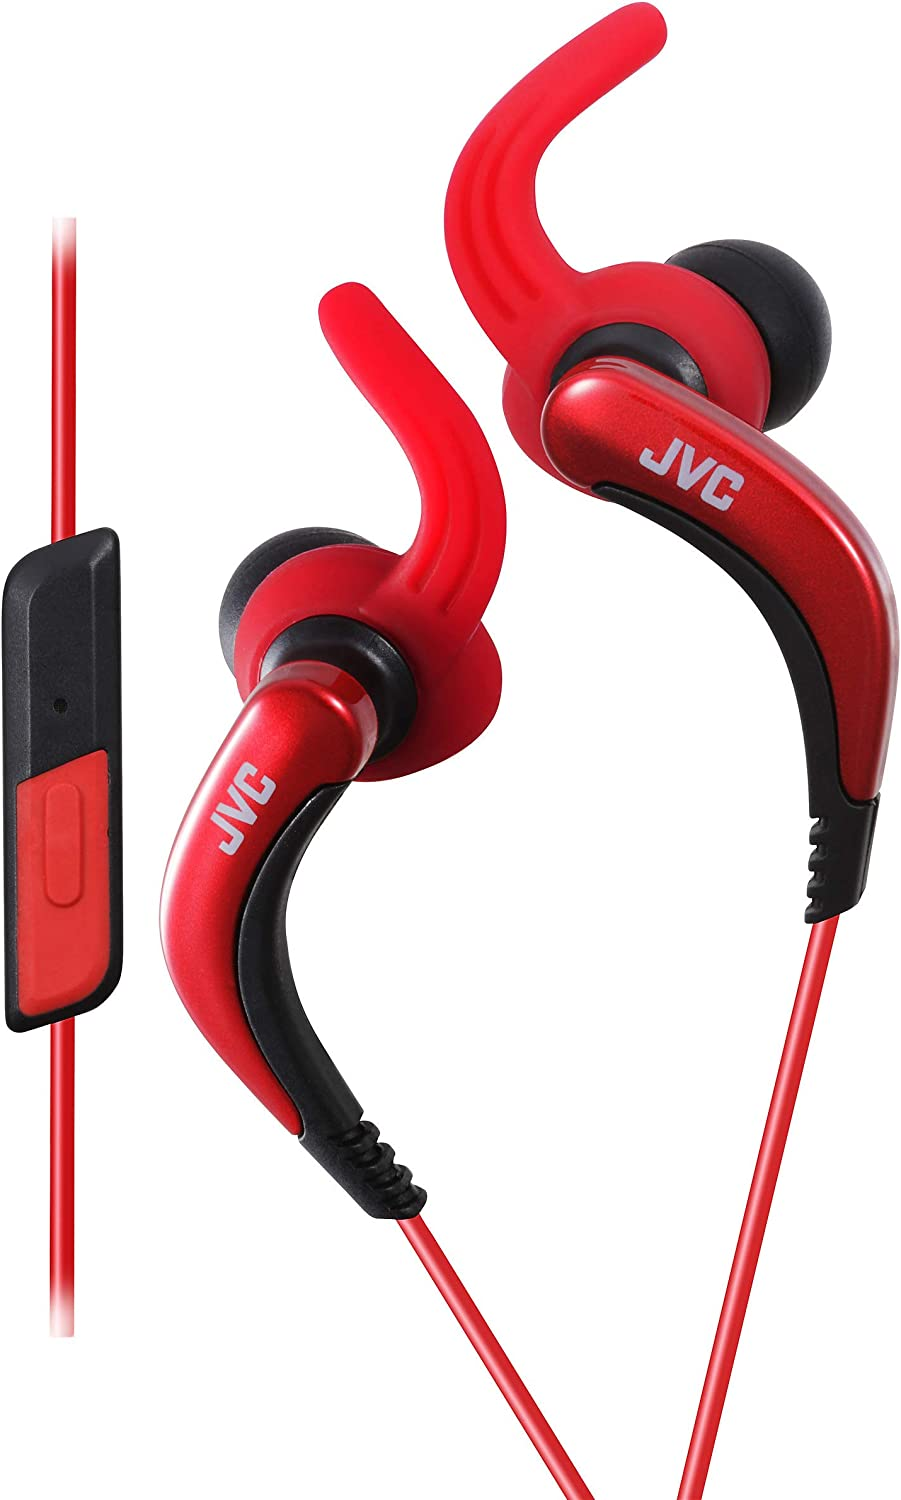 JVC HAETR40R Extreme Red Max 52% OFF Beauty products Fitness Headphones